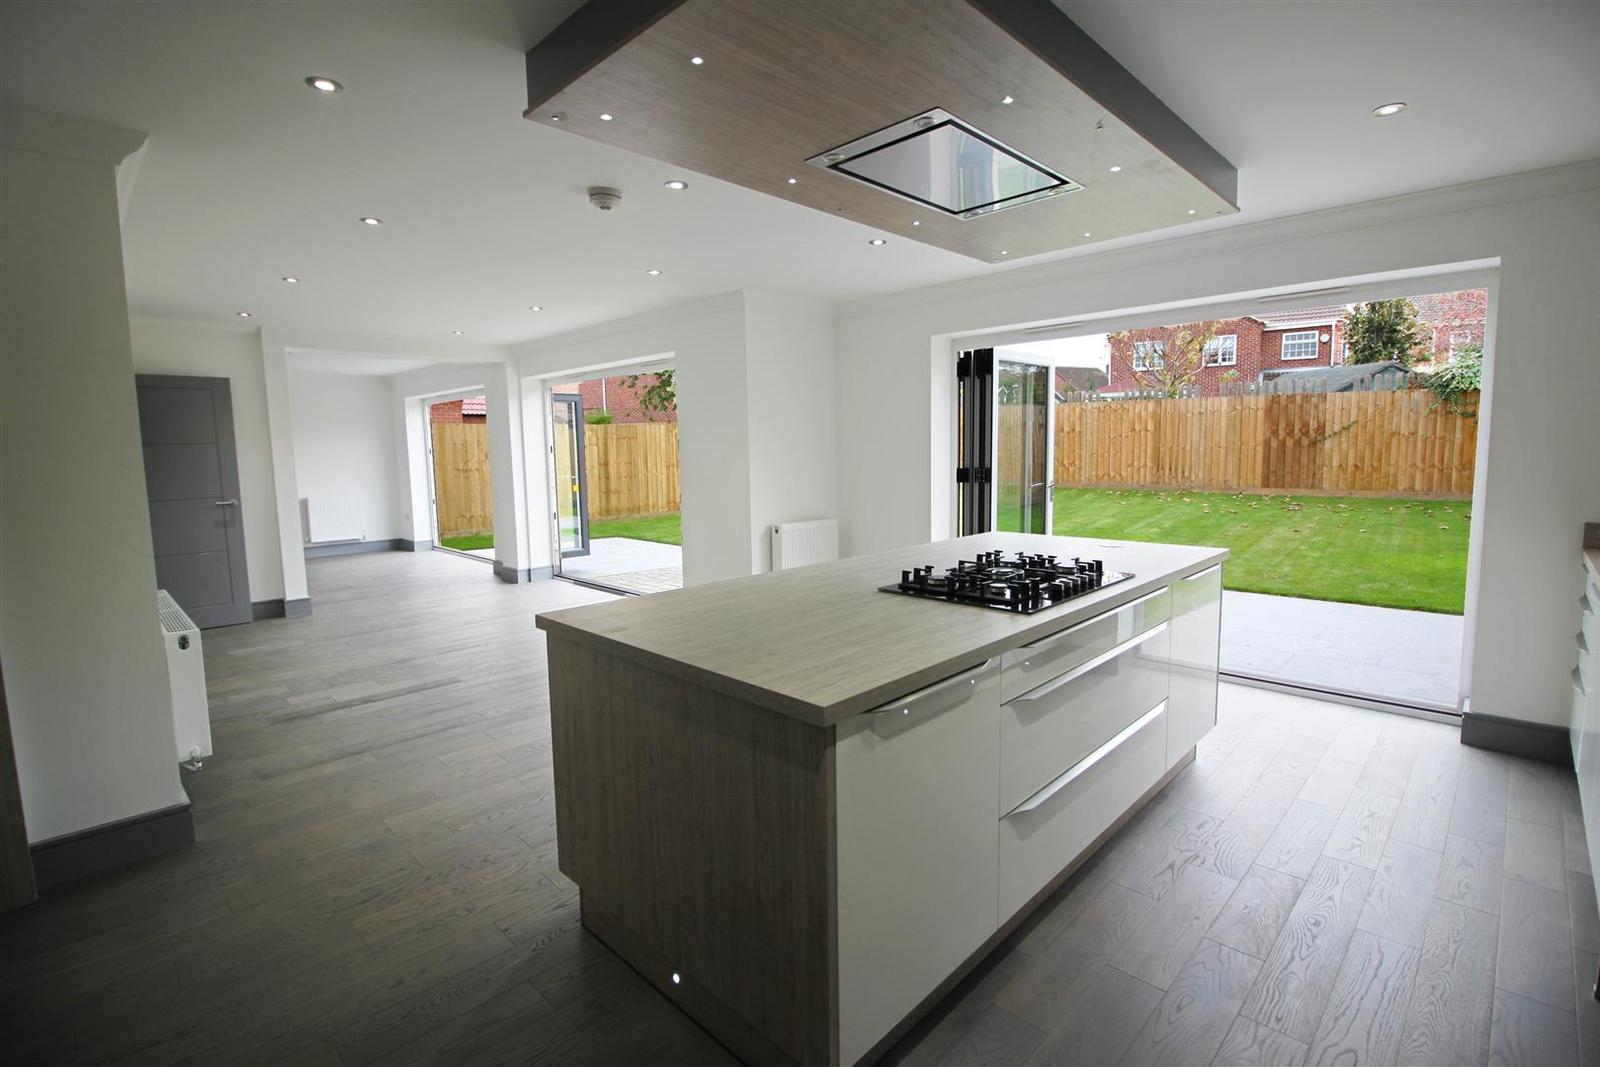 4 Bedrooms Property for sale in Plot 9, Valley View, Retford